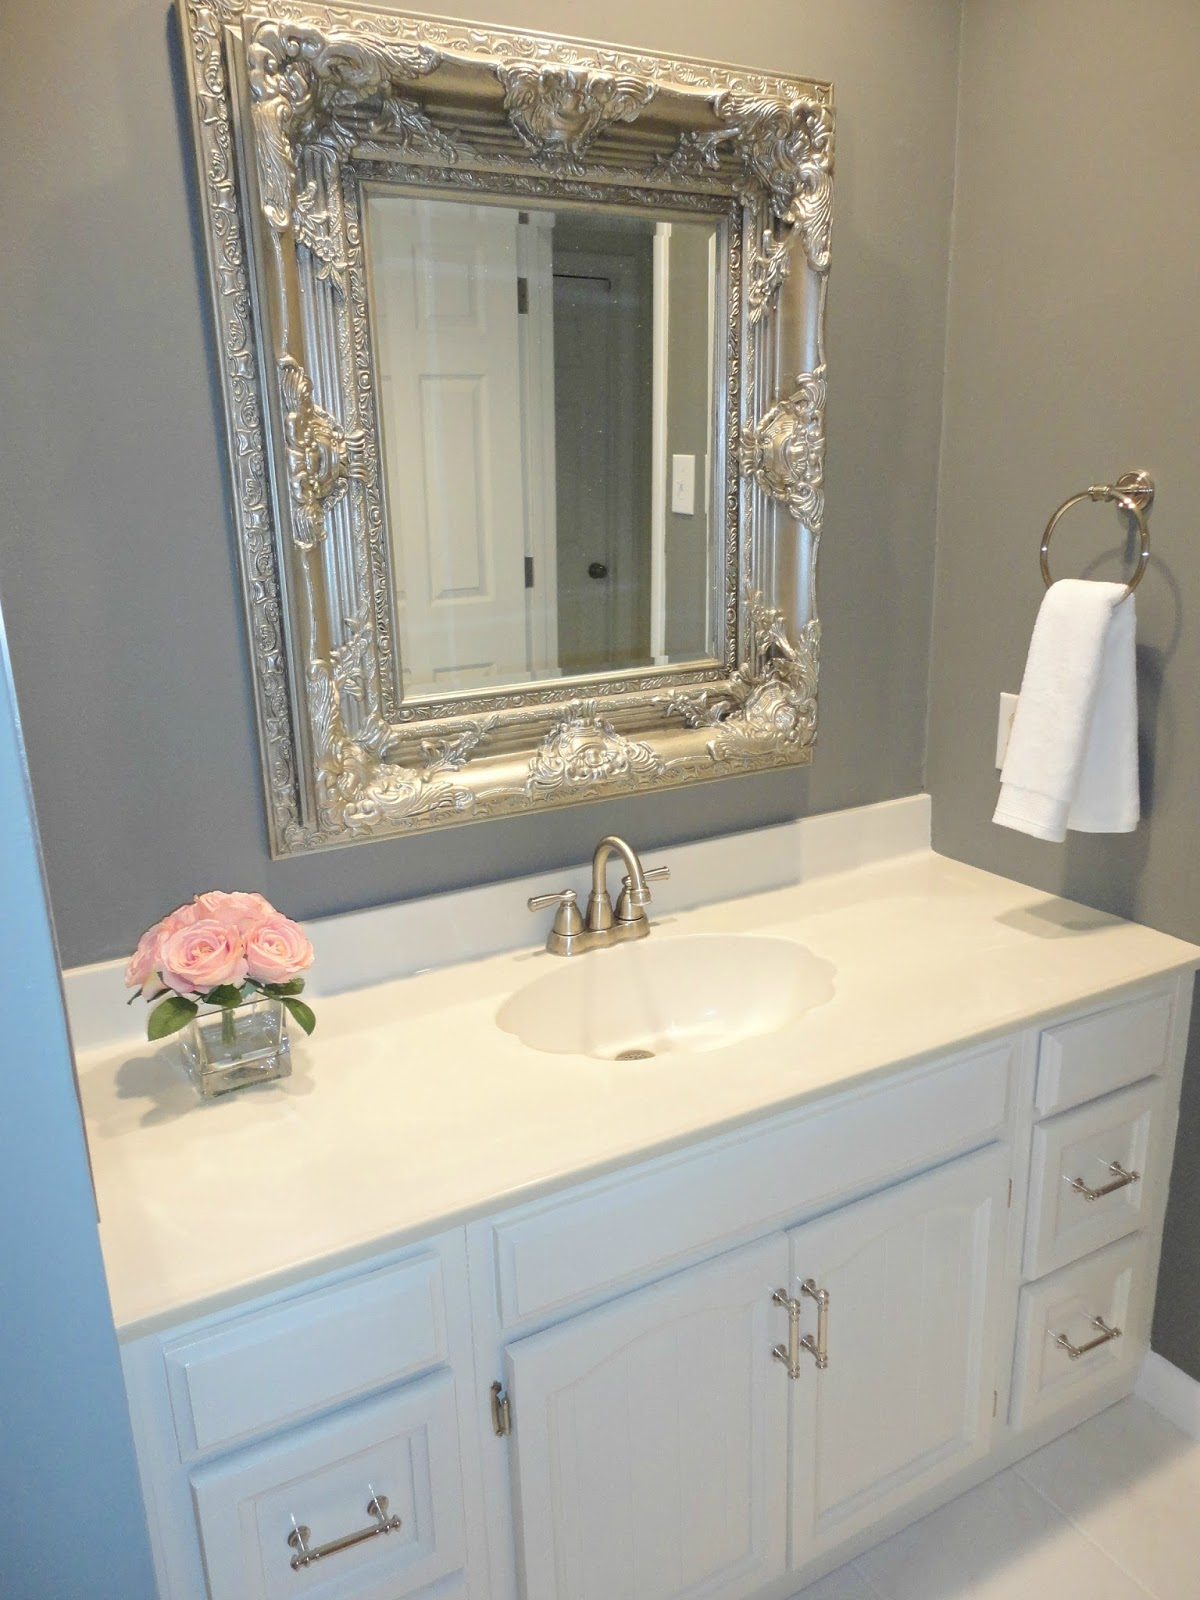 Bathroom Mirrors Discount 100+ [ bathroom upgrade ideas ] | bathroom remodel design ideas